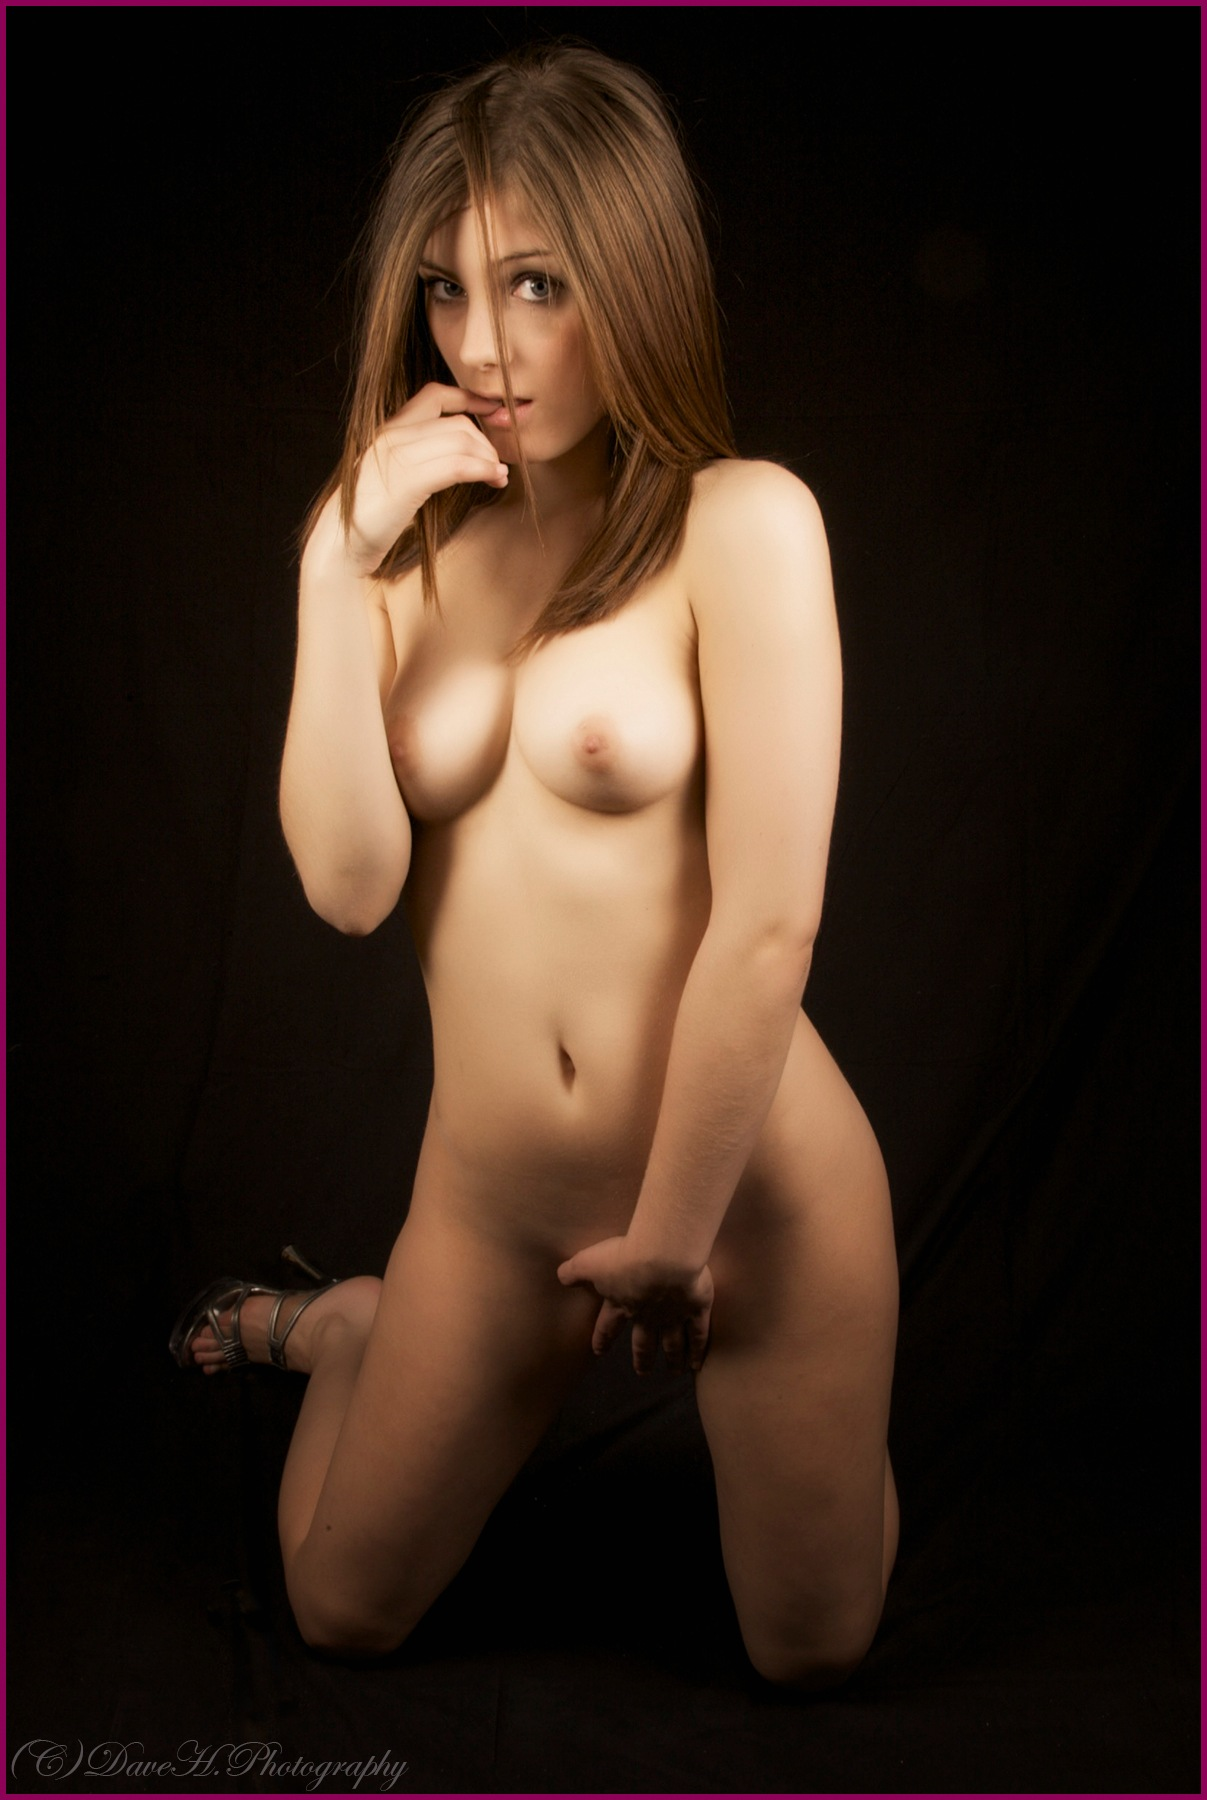 Art Nude Moment by David Haines